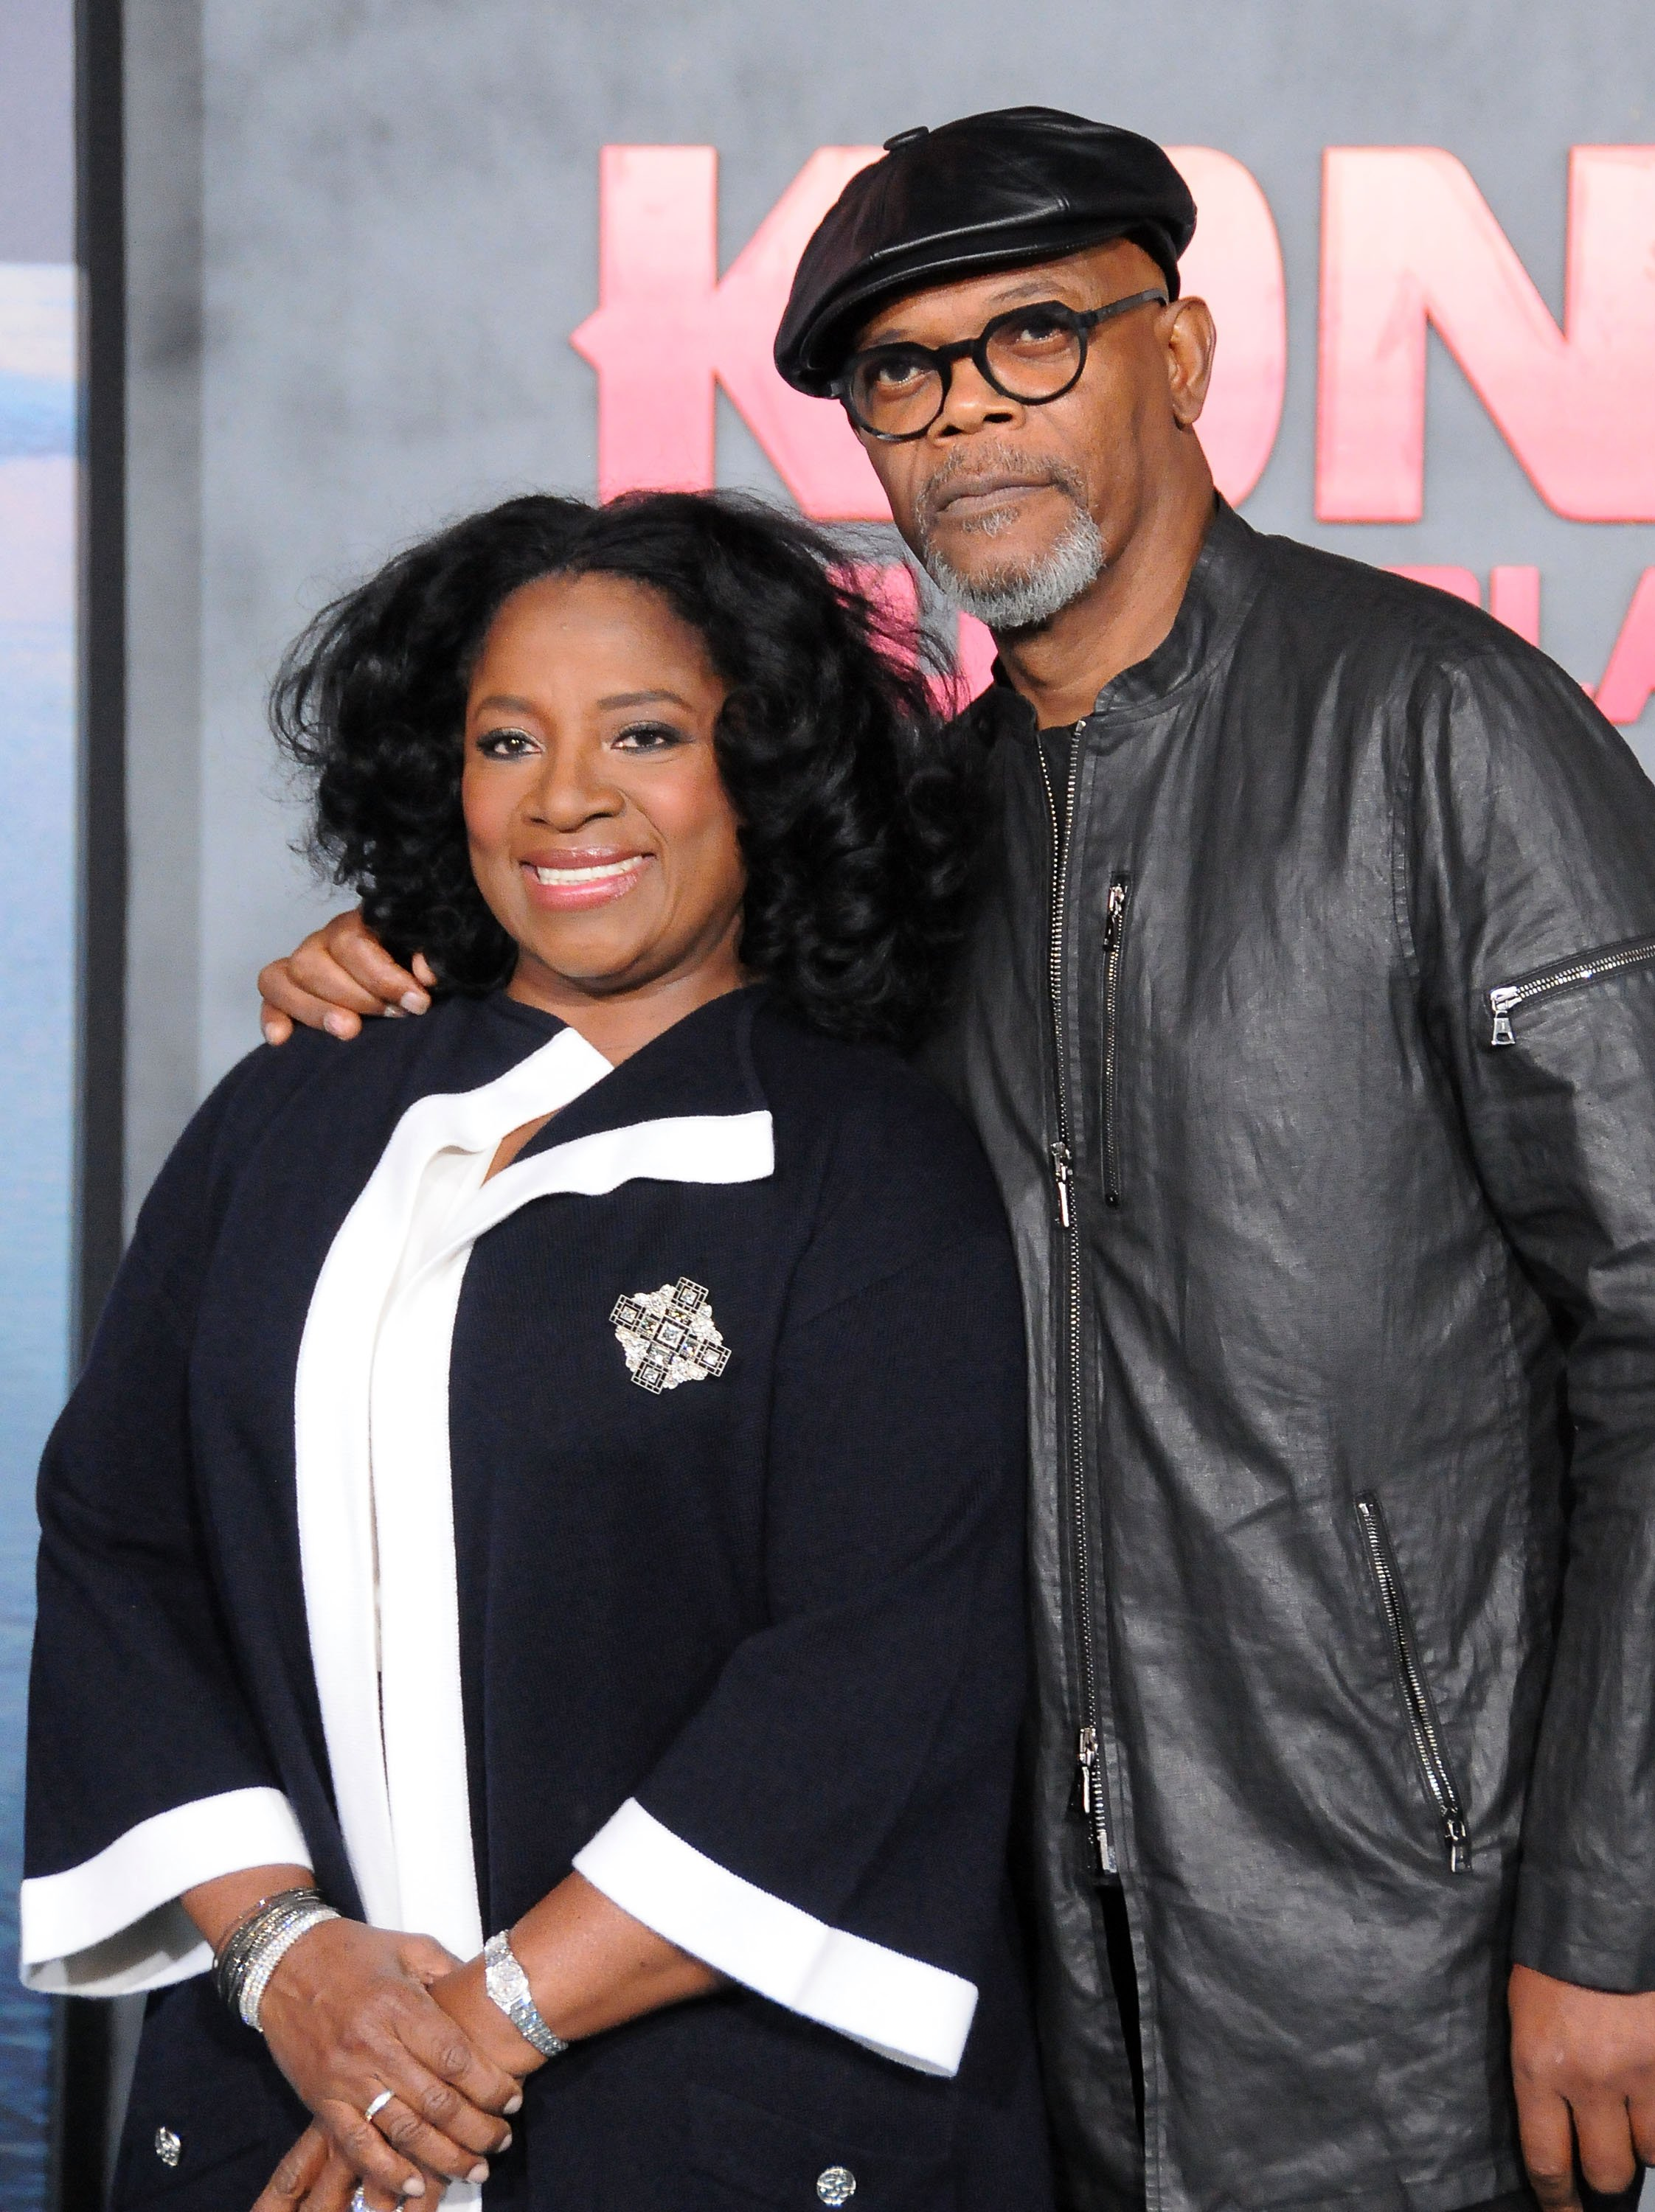 """LaTanya Richardson and Samuel L. Jackson attend the premiere""""Kong: Skull Island"""" at Dolby Theatre on March 8, 2017 in Hollywood, California l Source: Getty Images"""